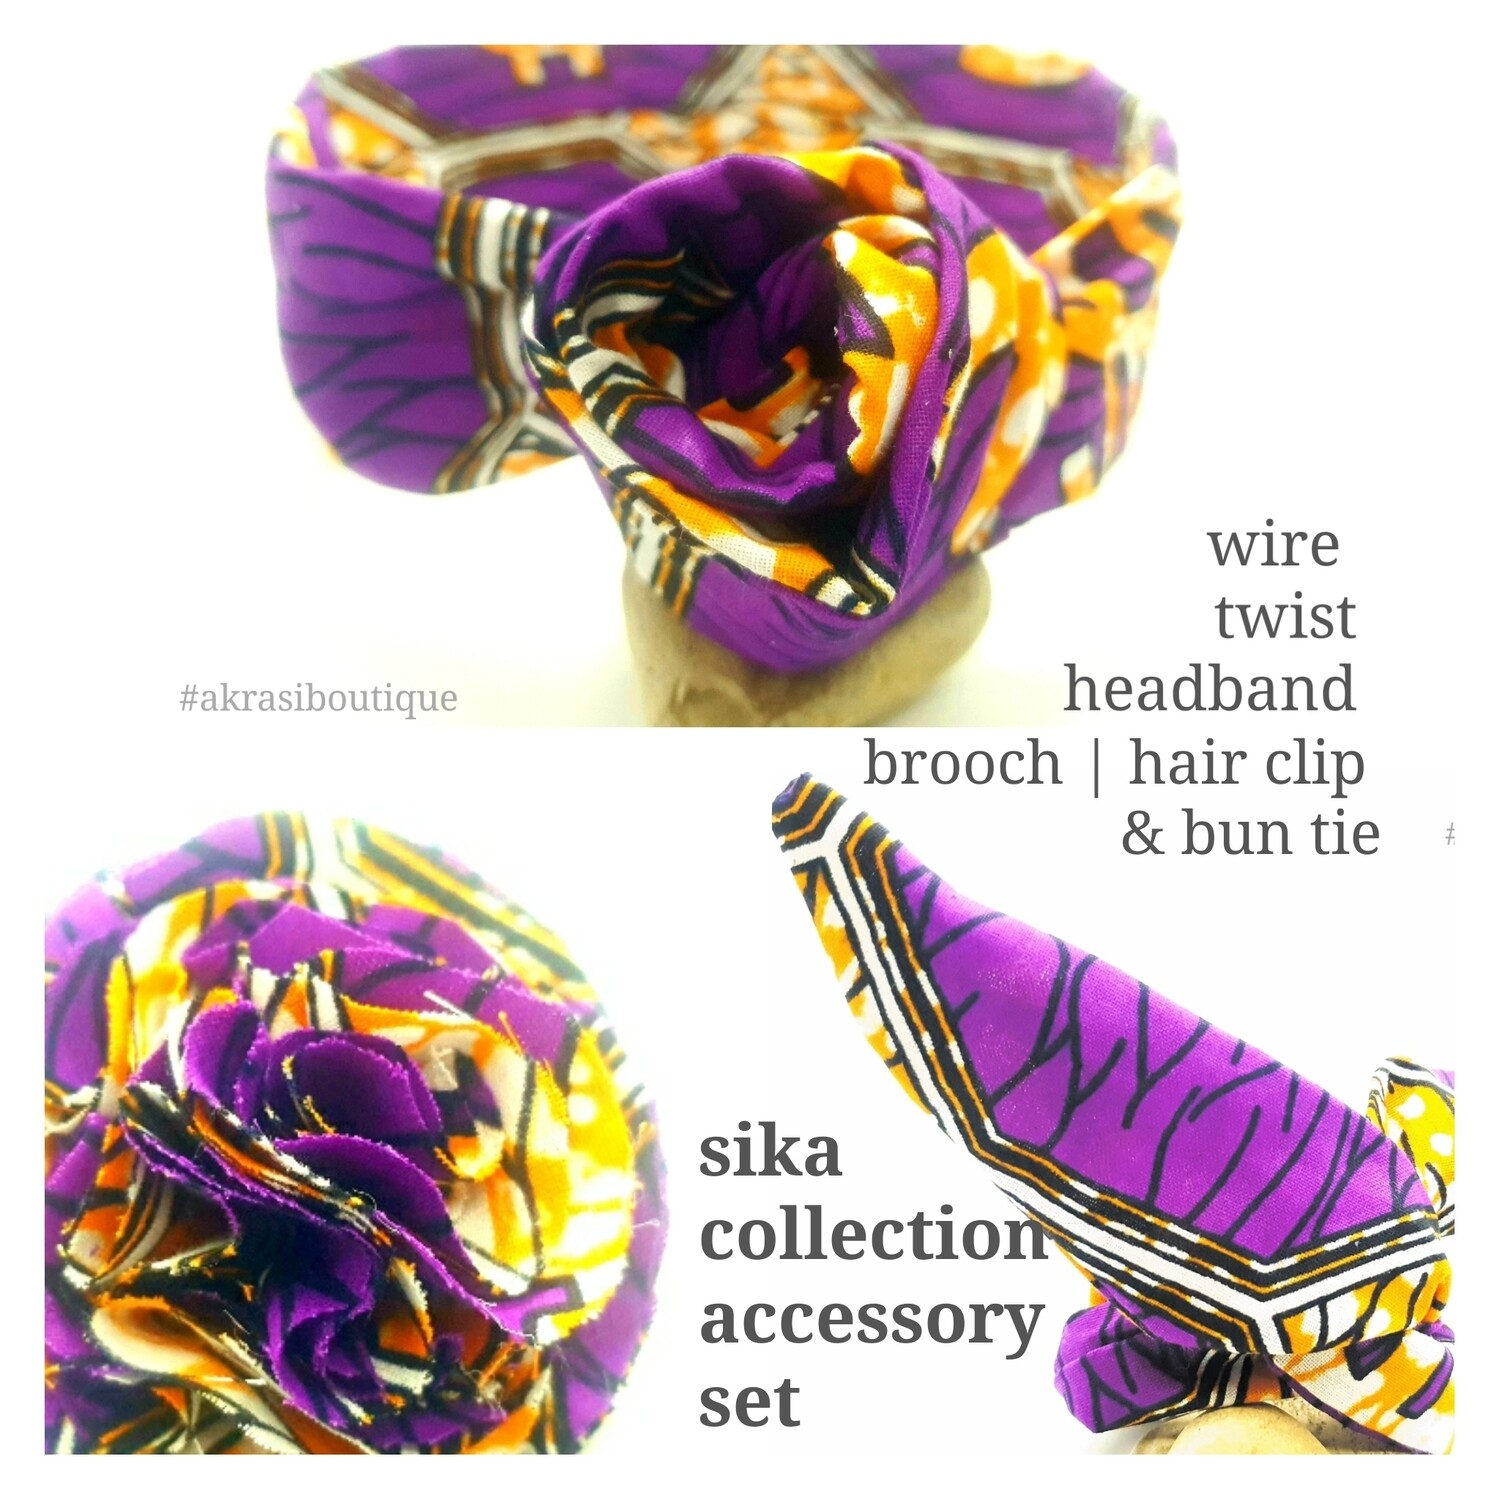 Sika collection accessory set includes purple ankara wire twist hair tie, bun tie and flower brooch | hair clip